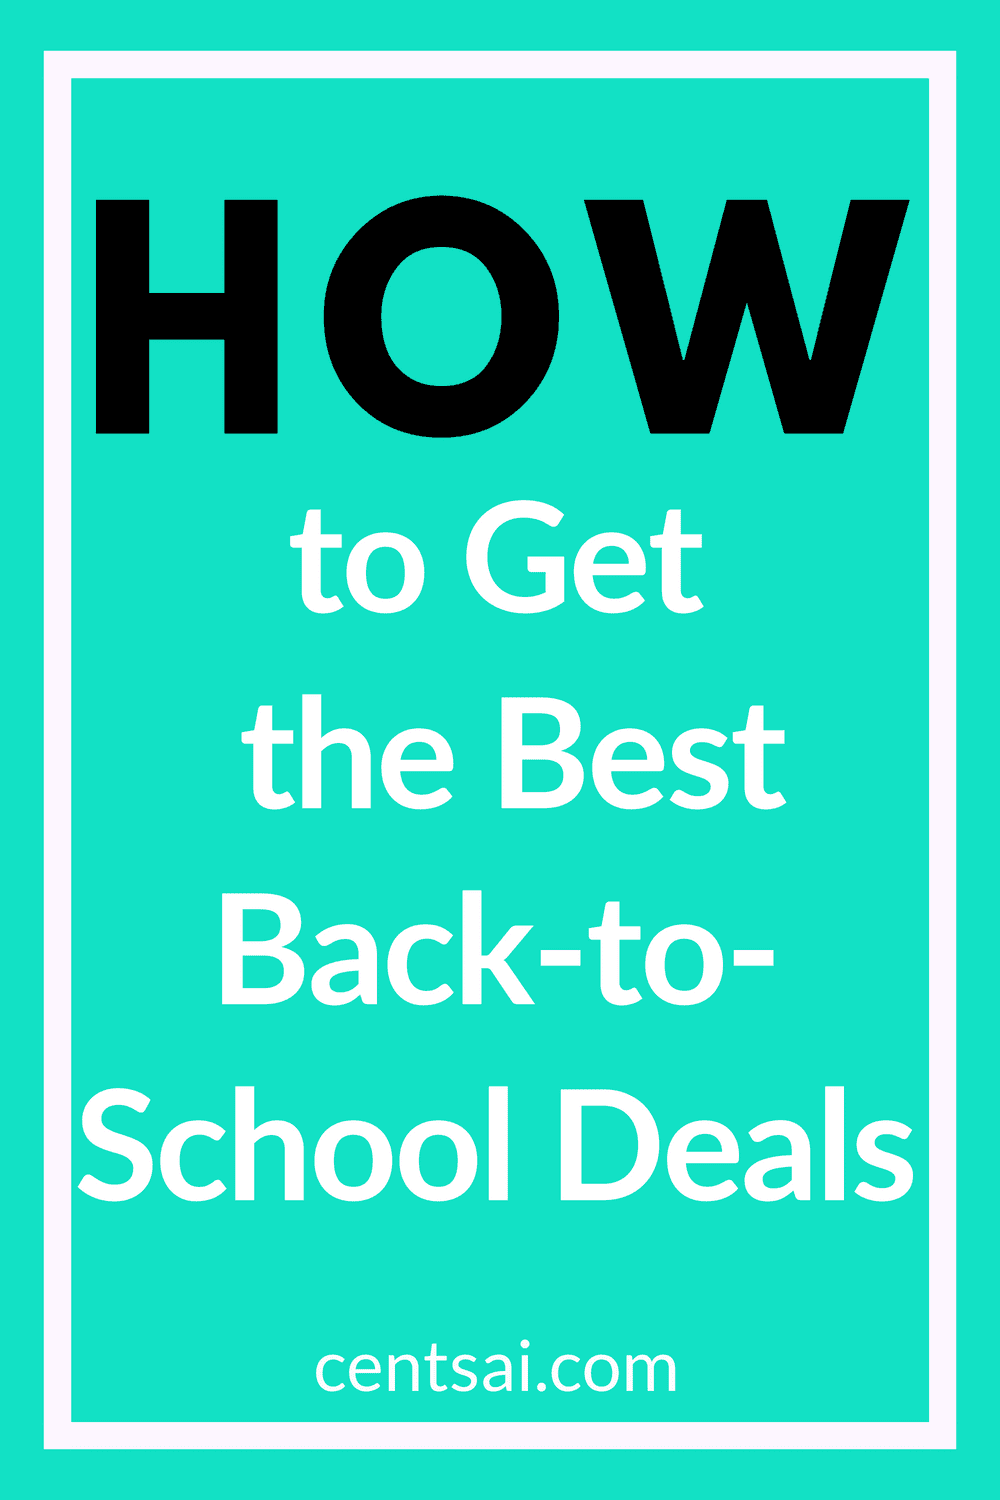 How to Get the Best Back-to-School Deals? Are you truly taking advantage of back-to-school sales? You may not be. Check out tips for how to find the best back-to-school deals. #backtoschool